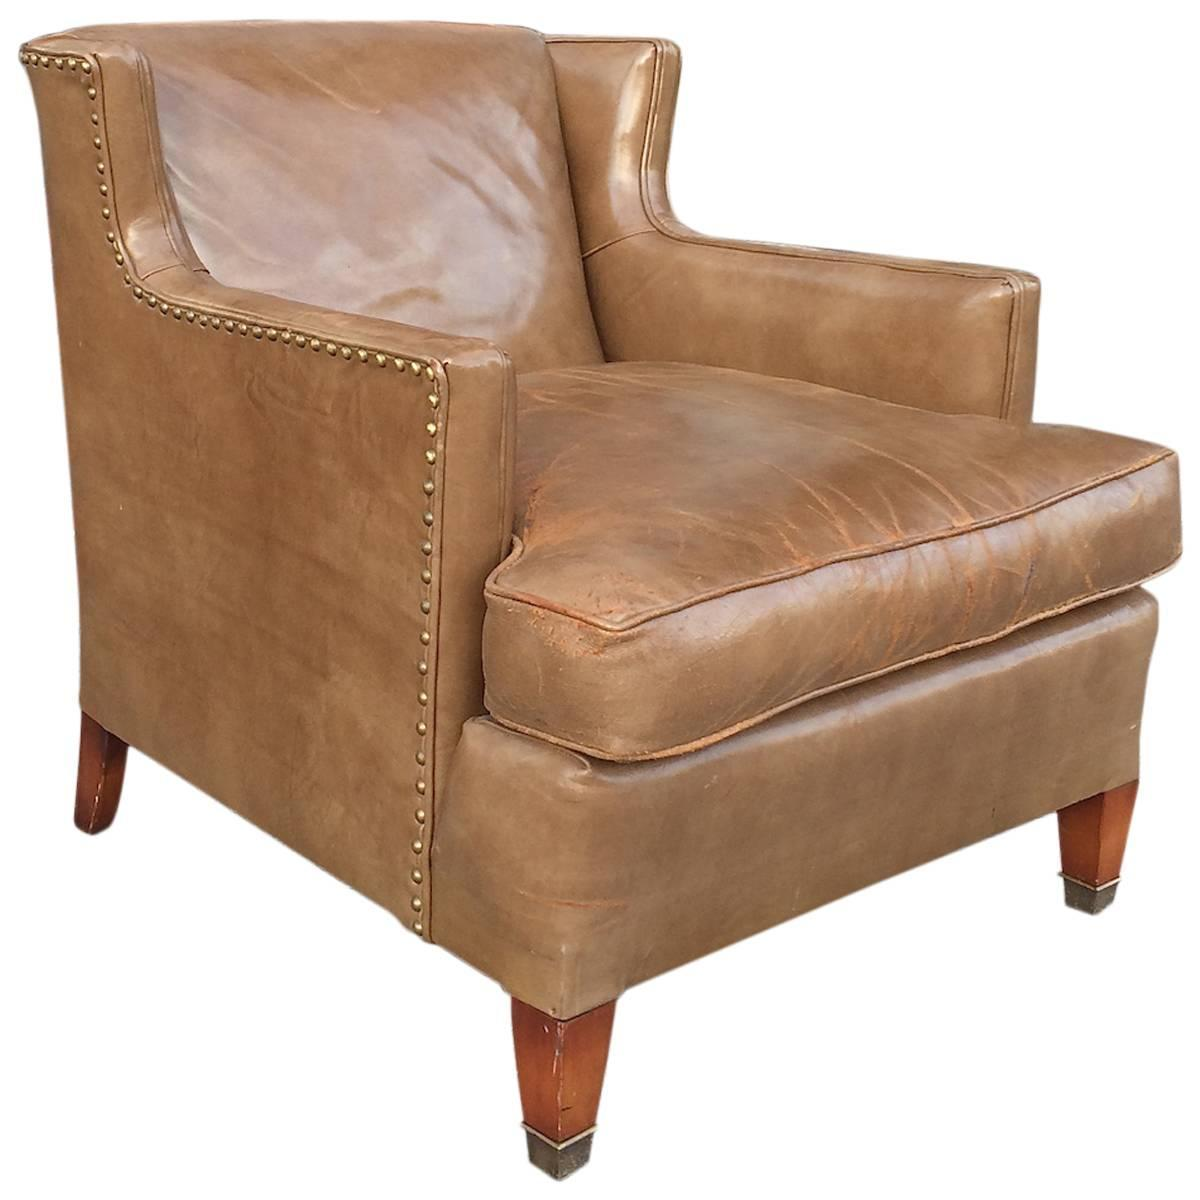 Mid Century Leather Club Chair By Hickory Chair Company NC At 1stdibs